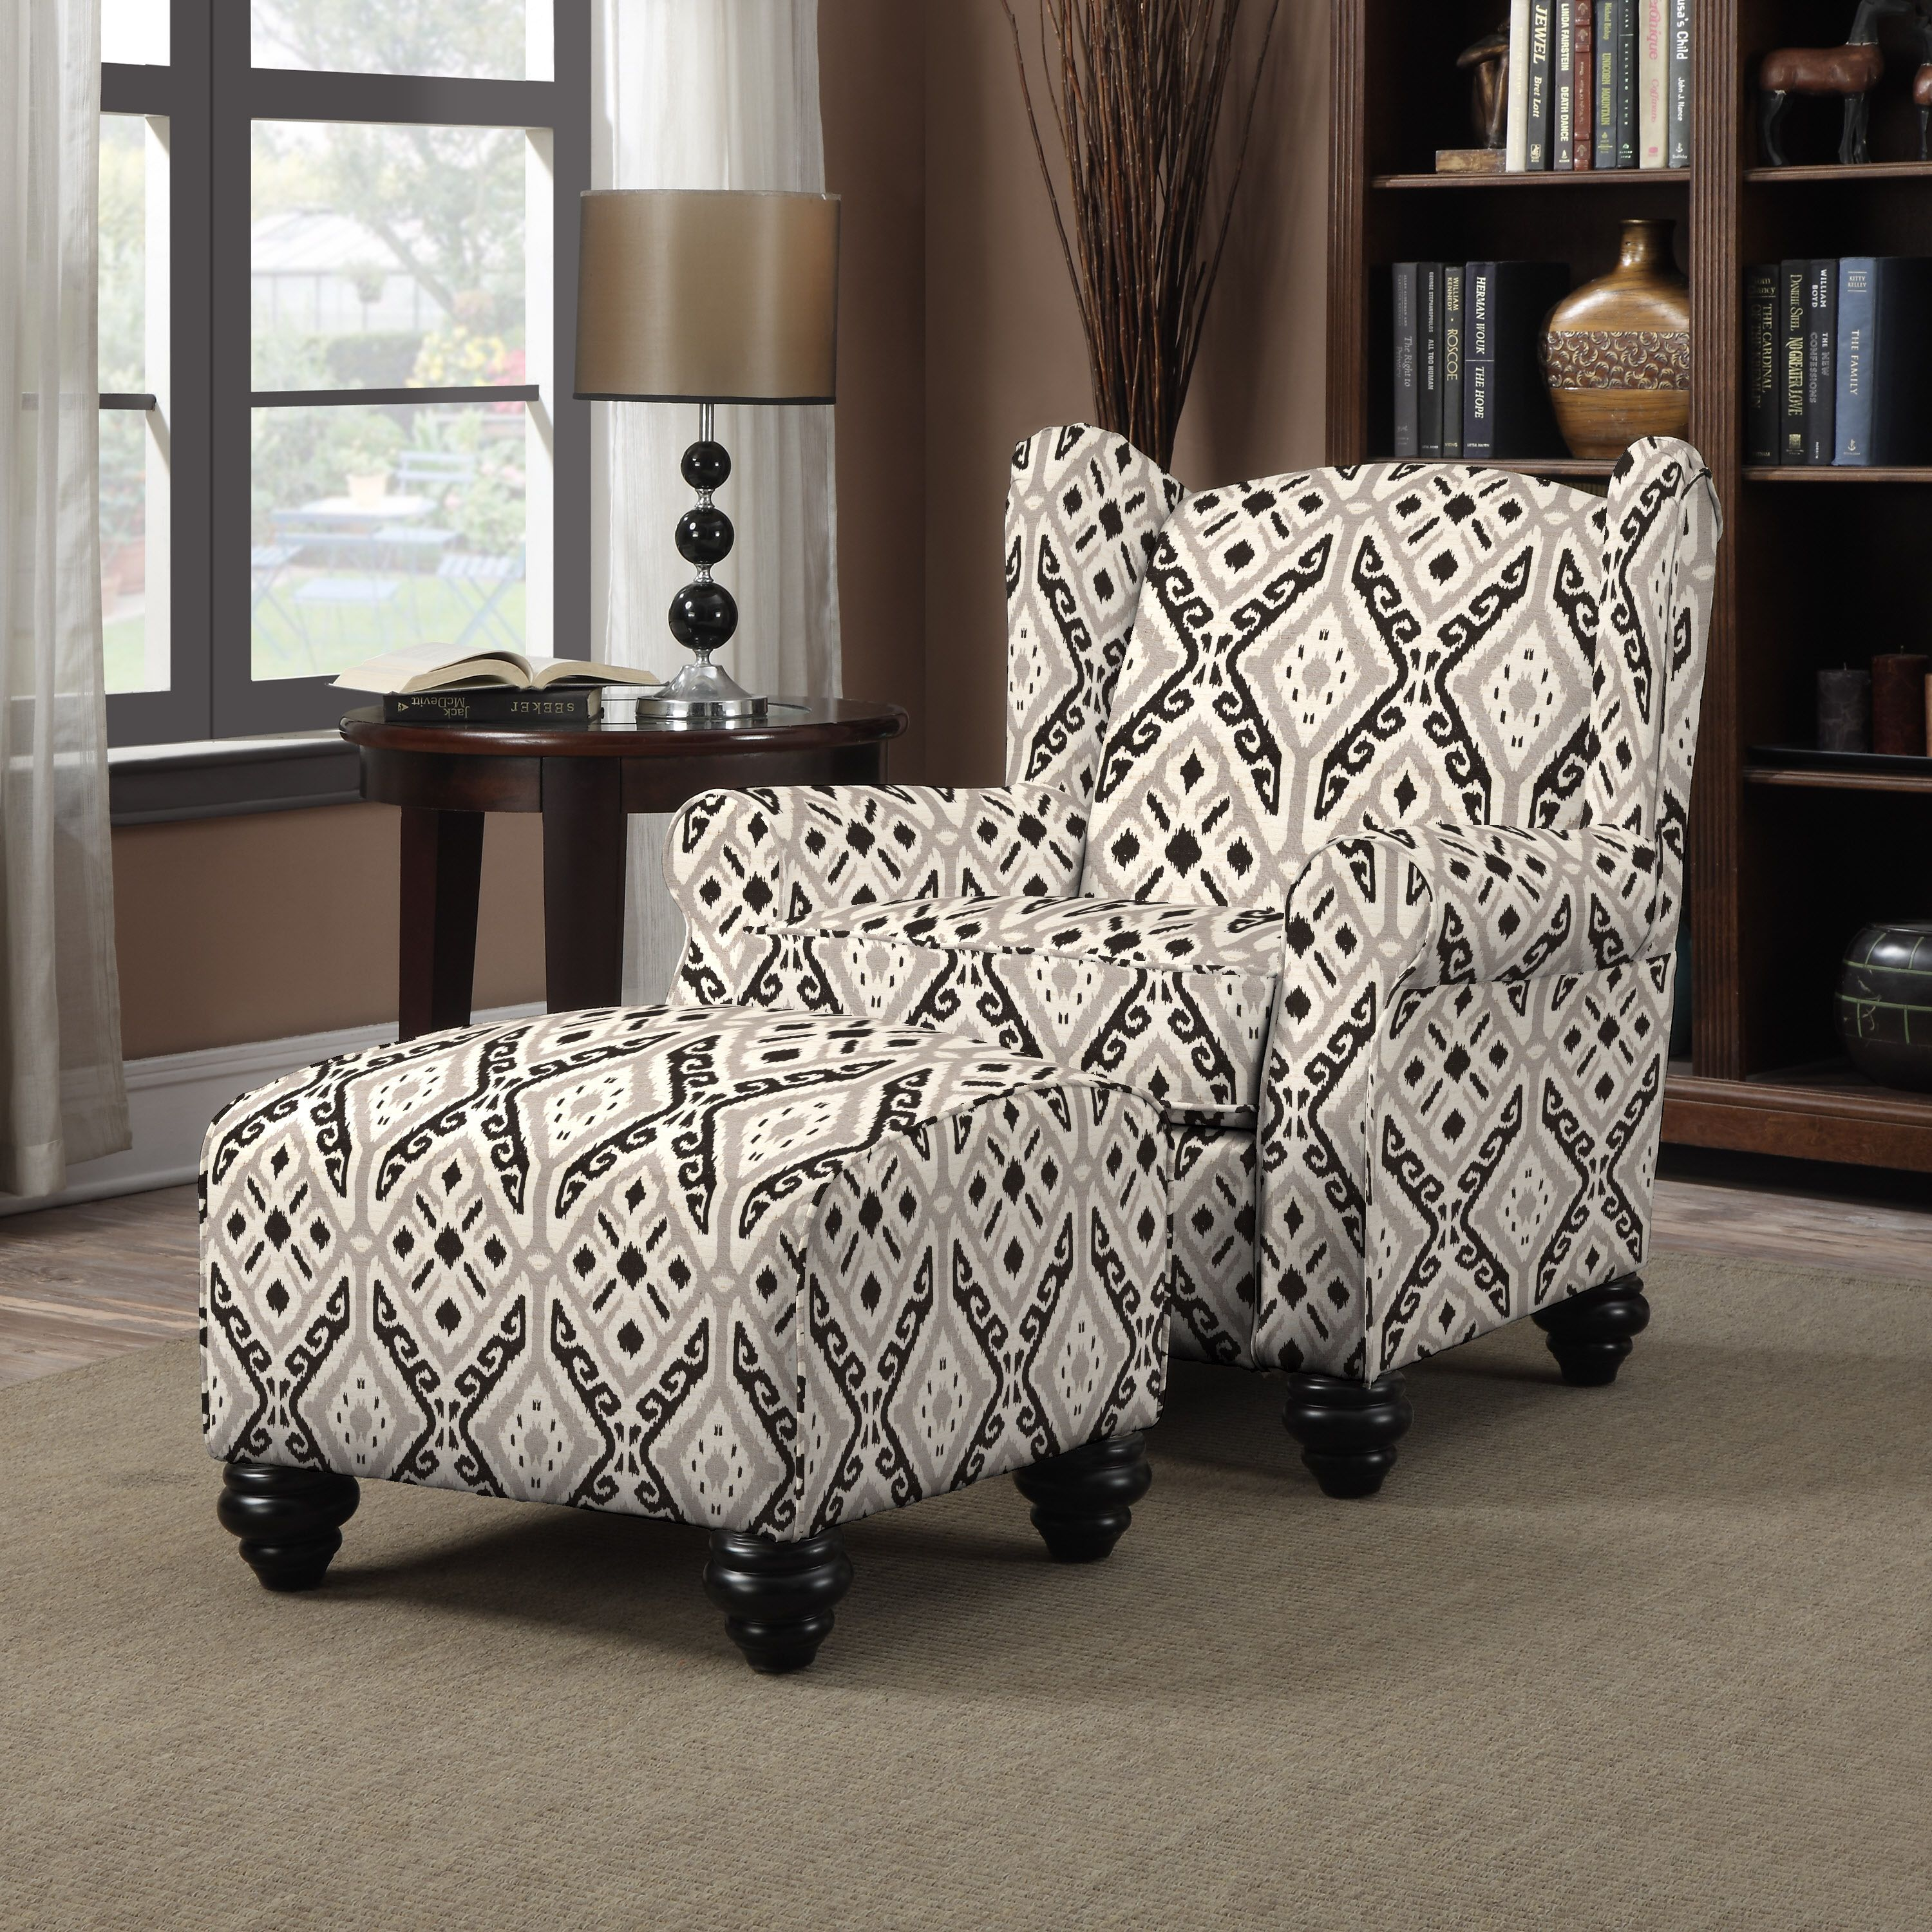 Portfolio hani grey and black ikat design chair and ottoman by portfolio living room